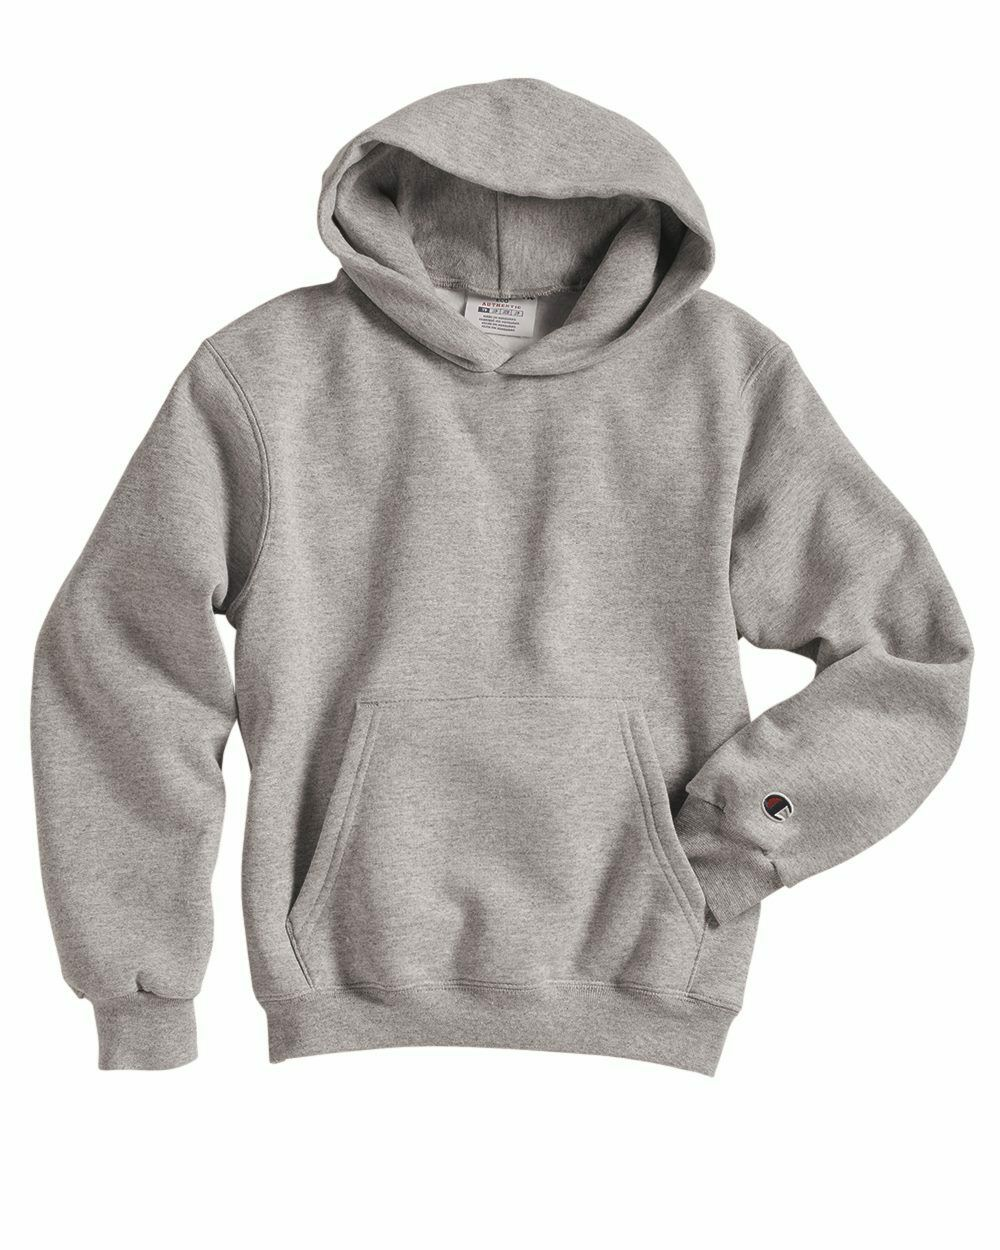 Unisex S-XL 8 COLORS Champion Youth Double Dry Action Fleece Pullover Hoodie